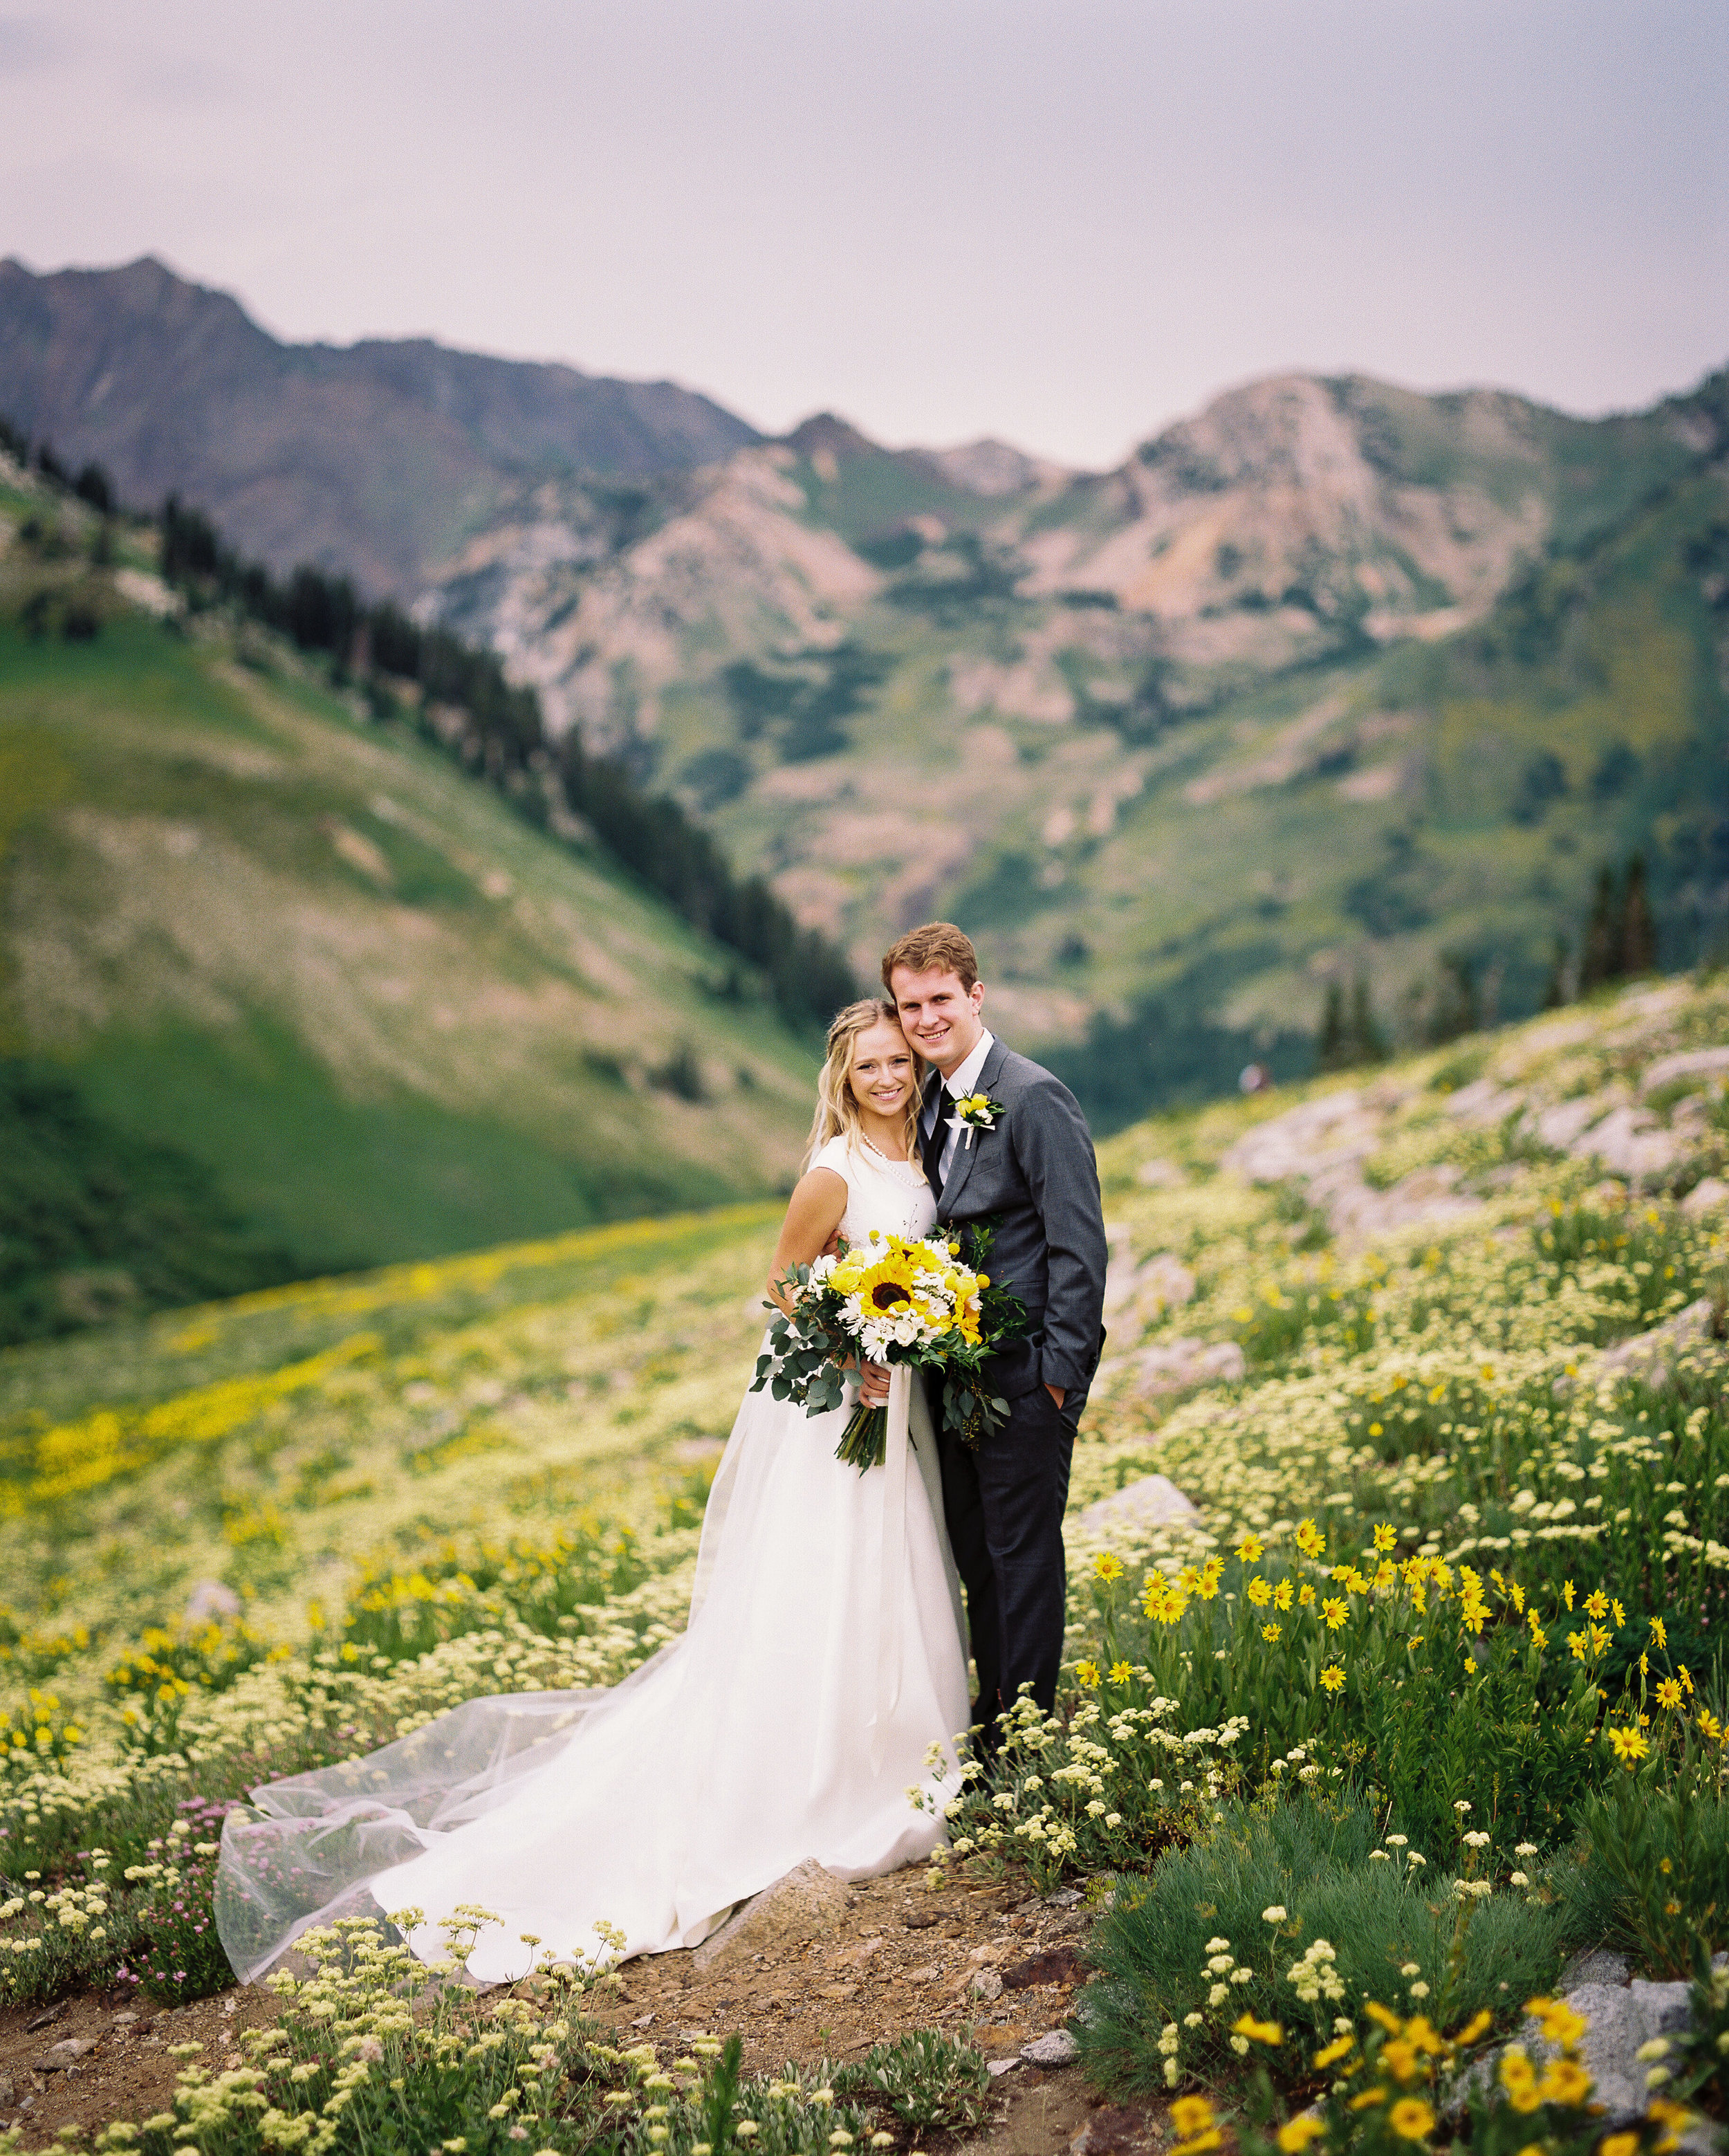 Dan Page Photography, Utah Wedding Photographer, Bridals, Adventure, Fine Art Film Photography